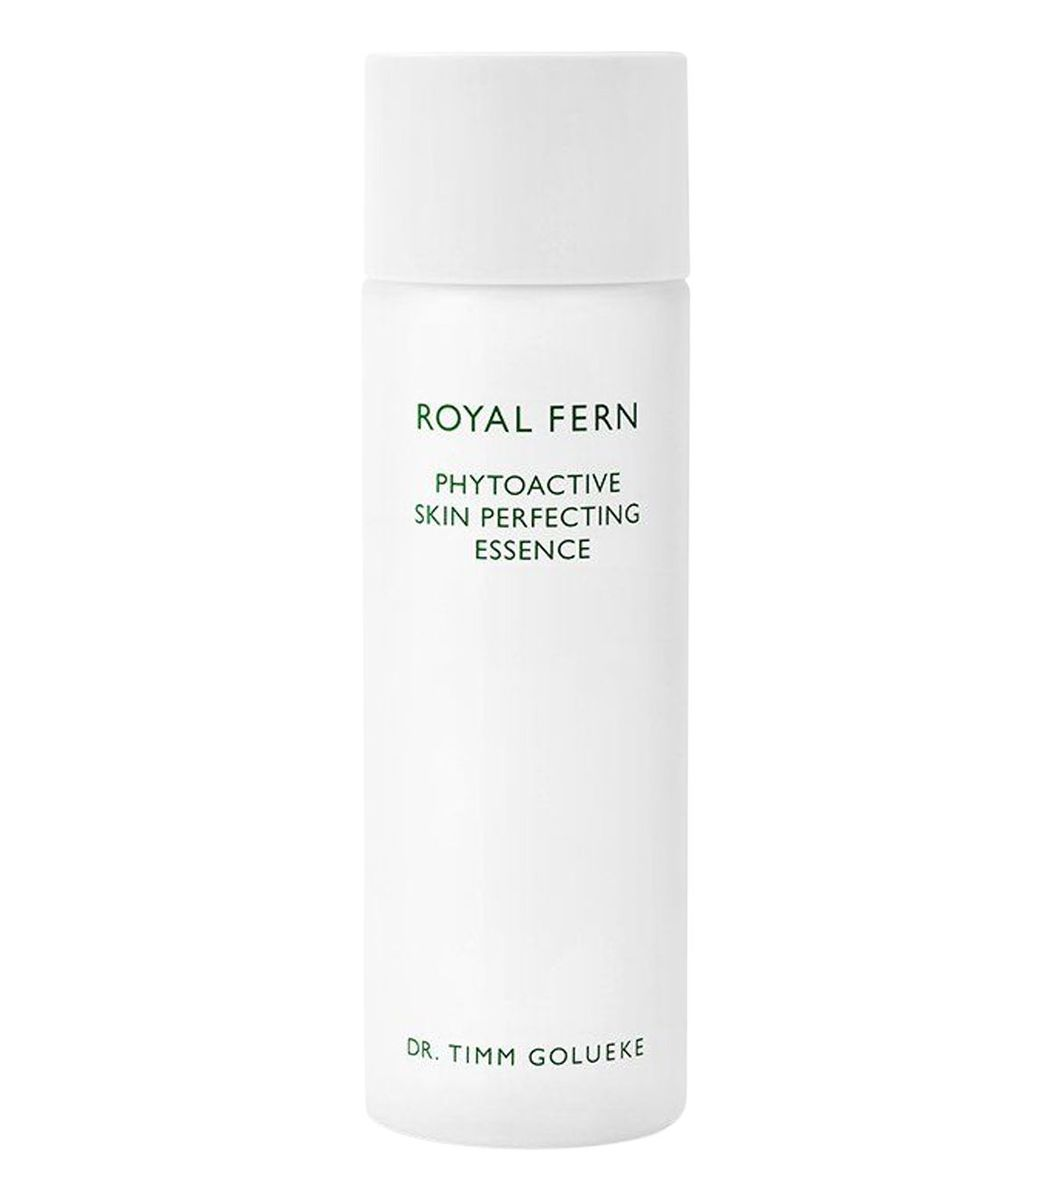 Royal Fern Phytoactive Skin Perfecting Essence In White